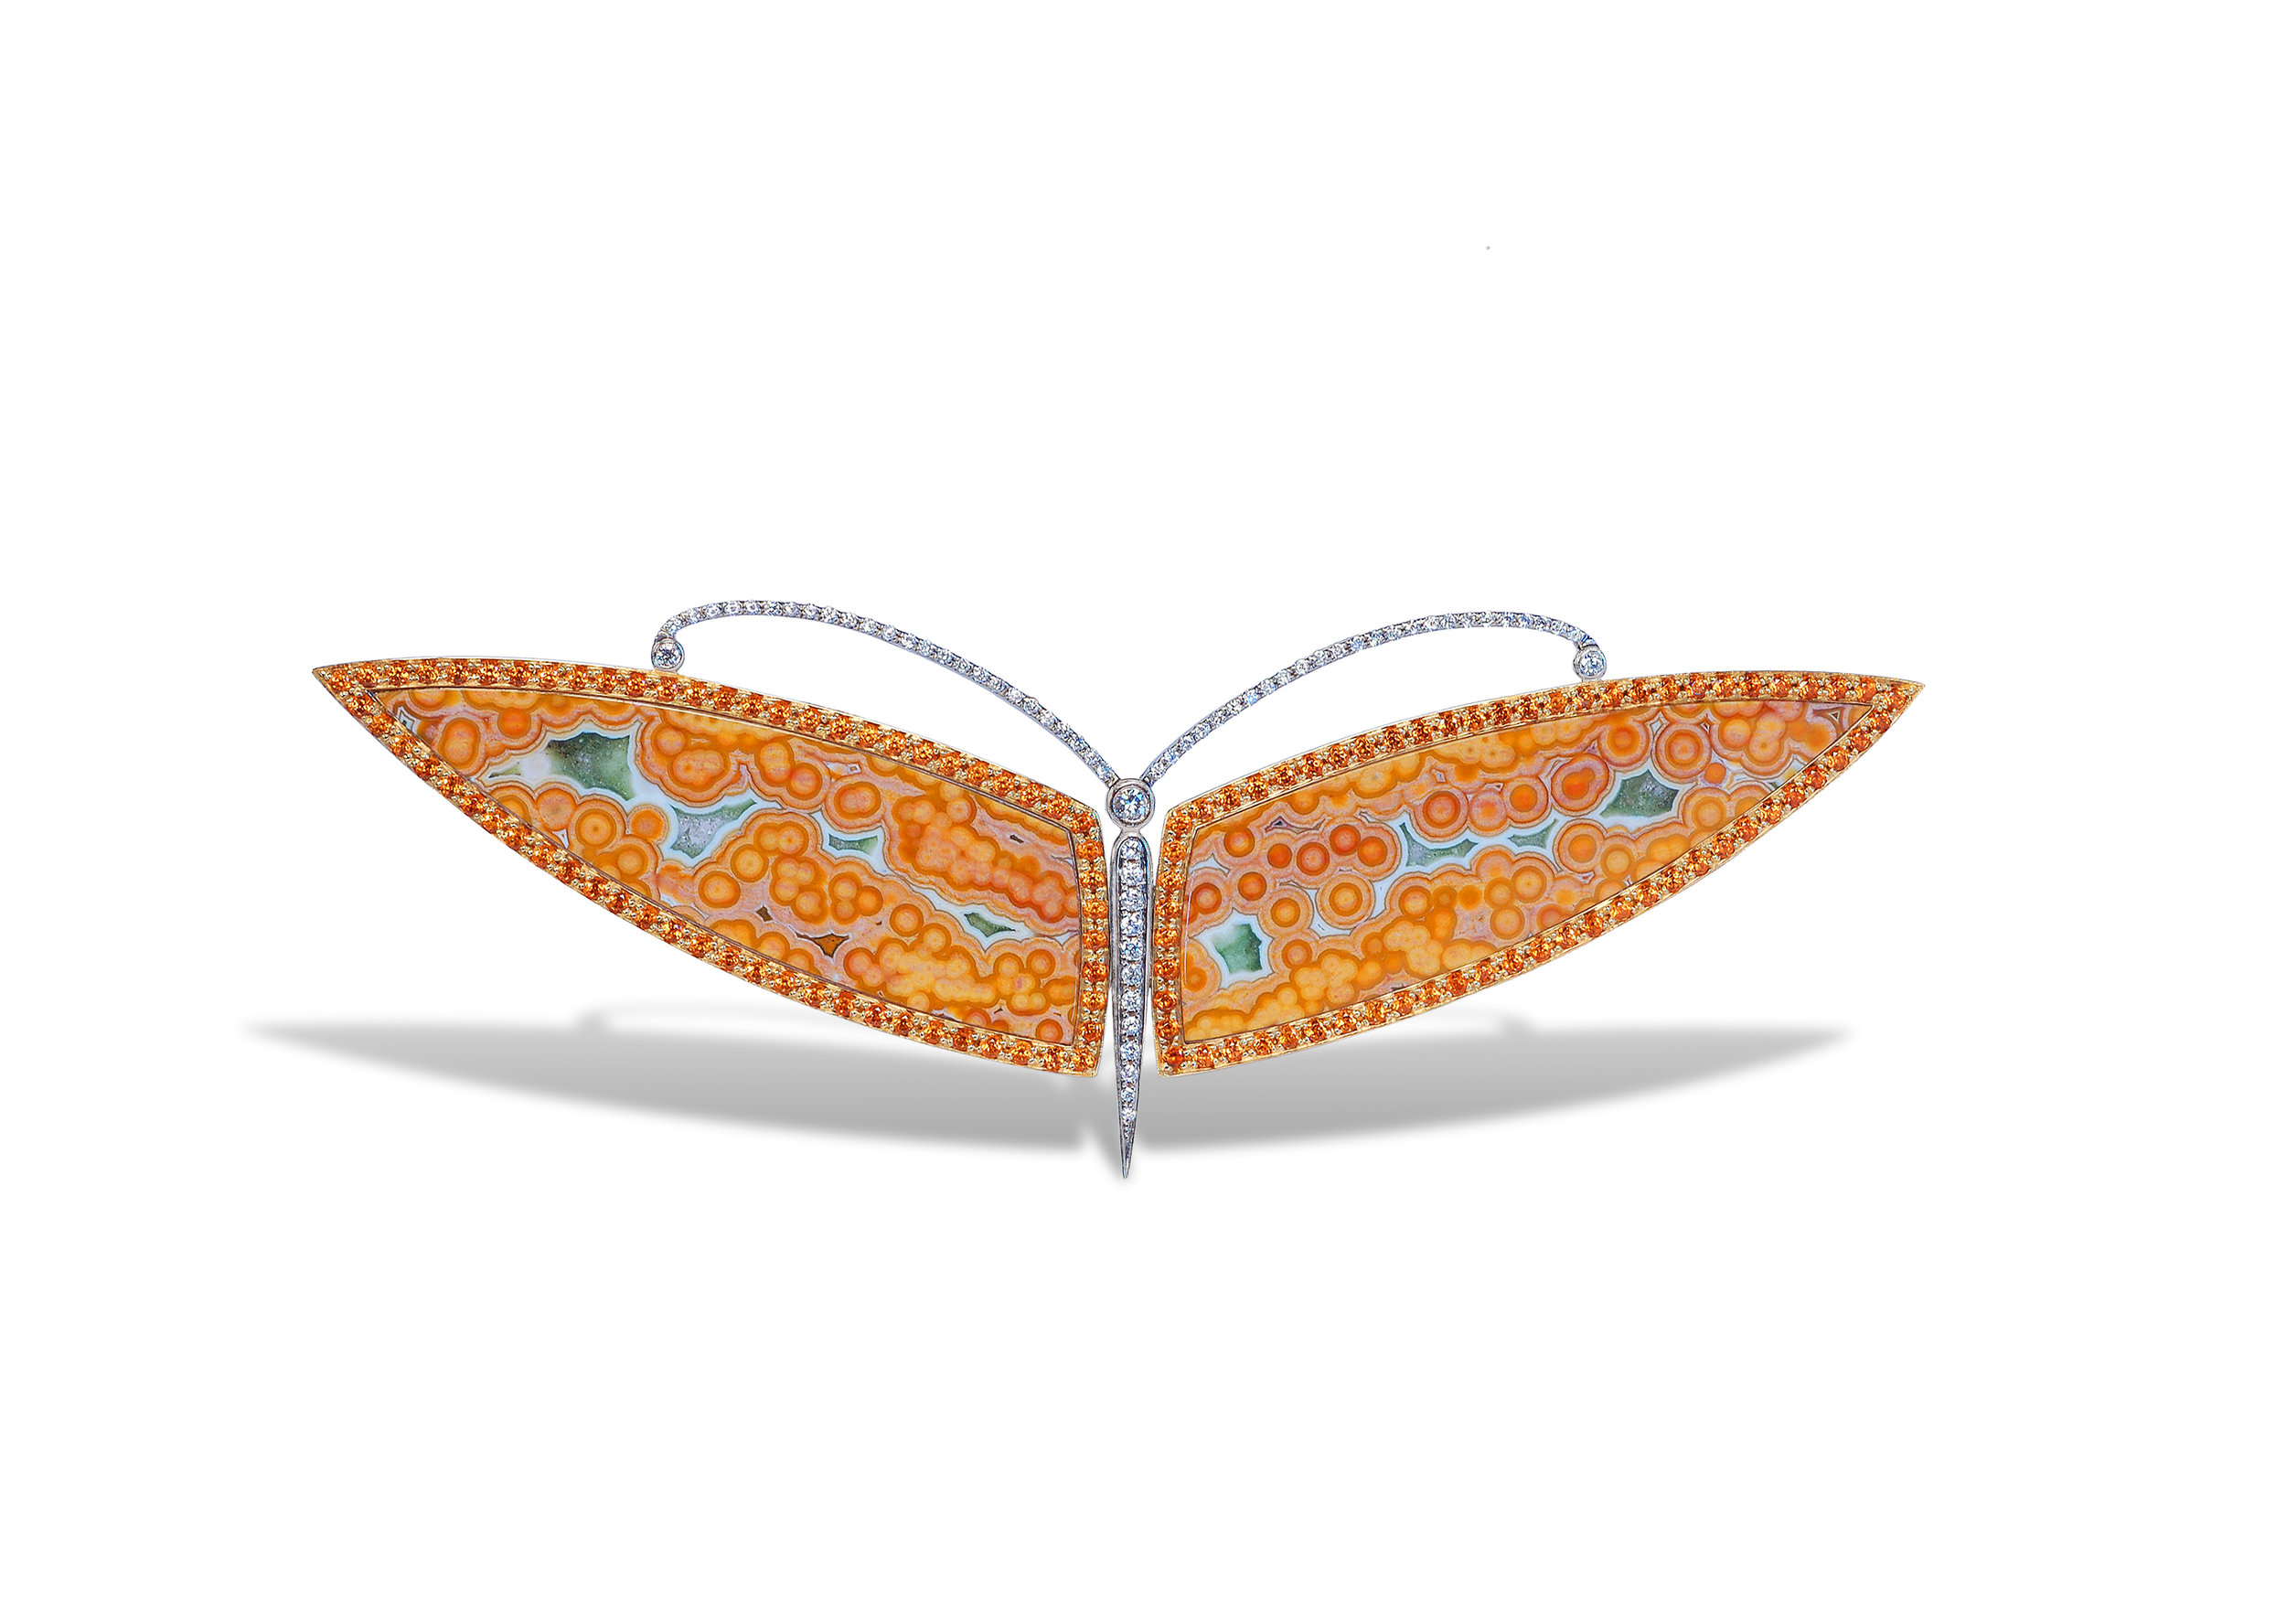 brooch in 18 karat white gold, ocean jasper wings, and white diamonds in the antenna and body